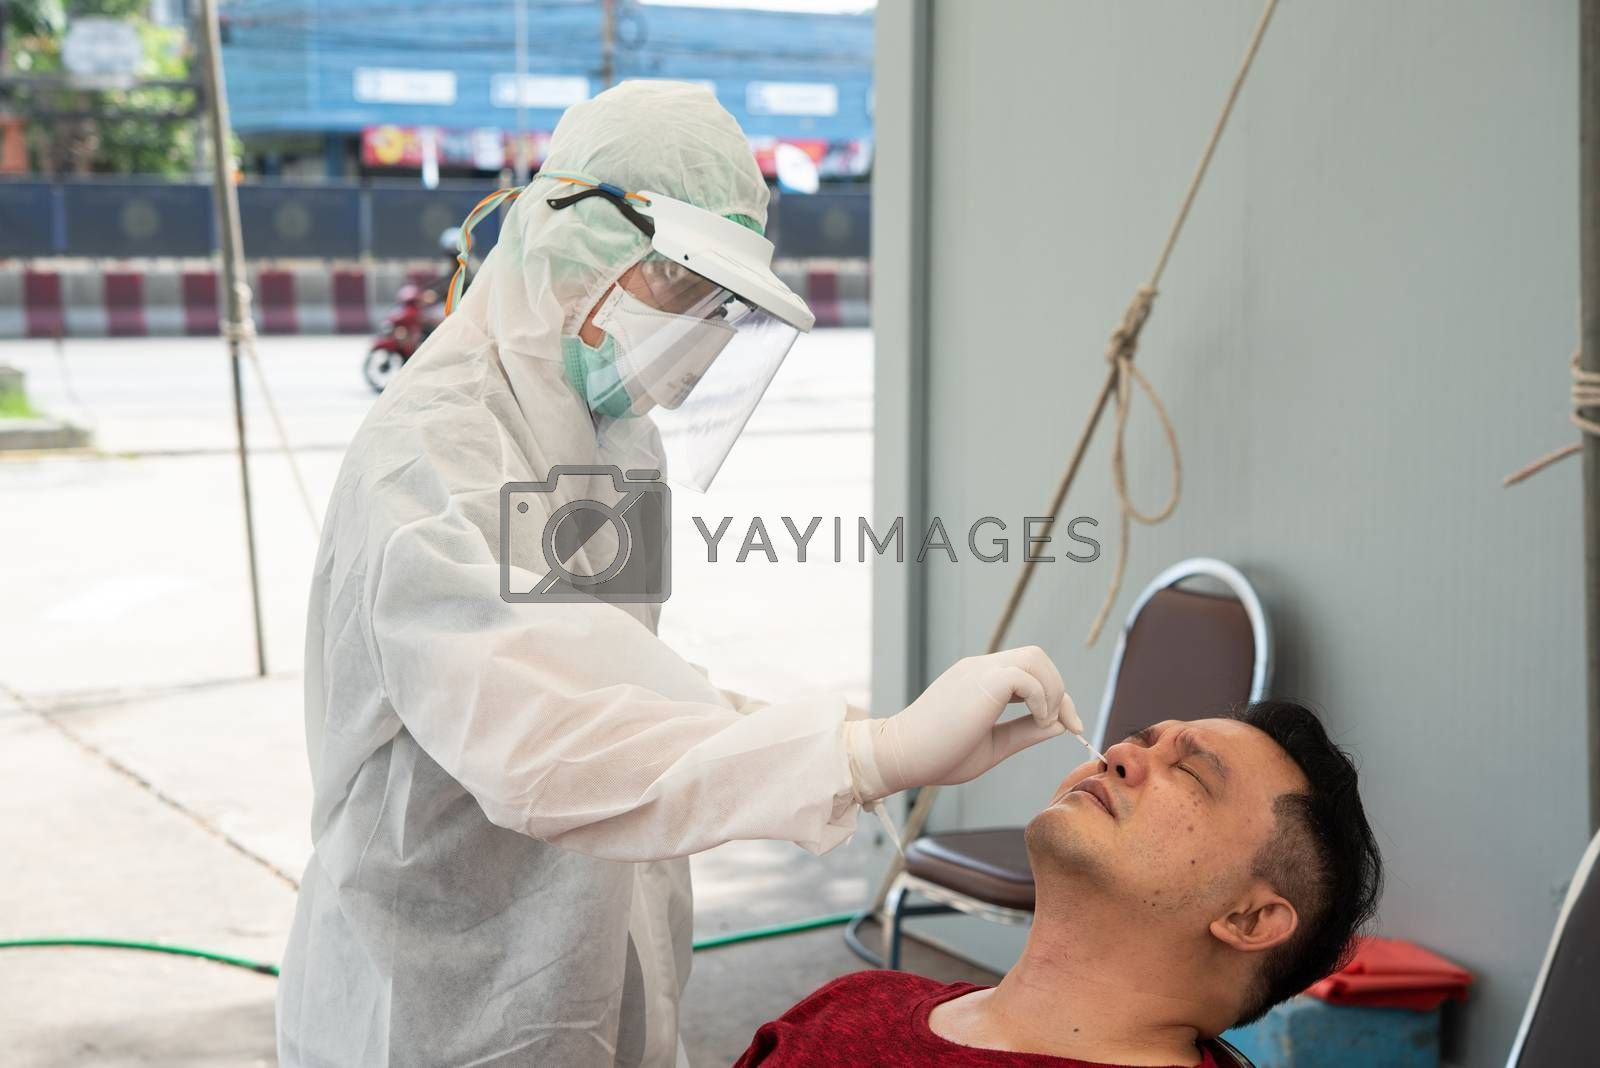 Bangkok, Thailand - May 17, 2020 : Unidentified doctor in PPE suit and asian man patient check by COVID-19 specimen performing a nasopharyngeal or oropharyngeal swab from nasal and oral at hospital